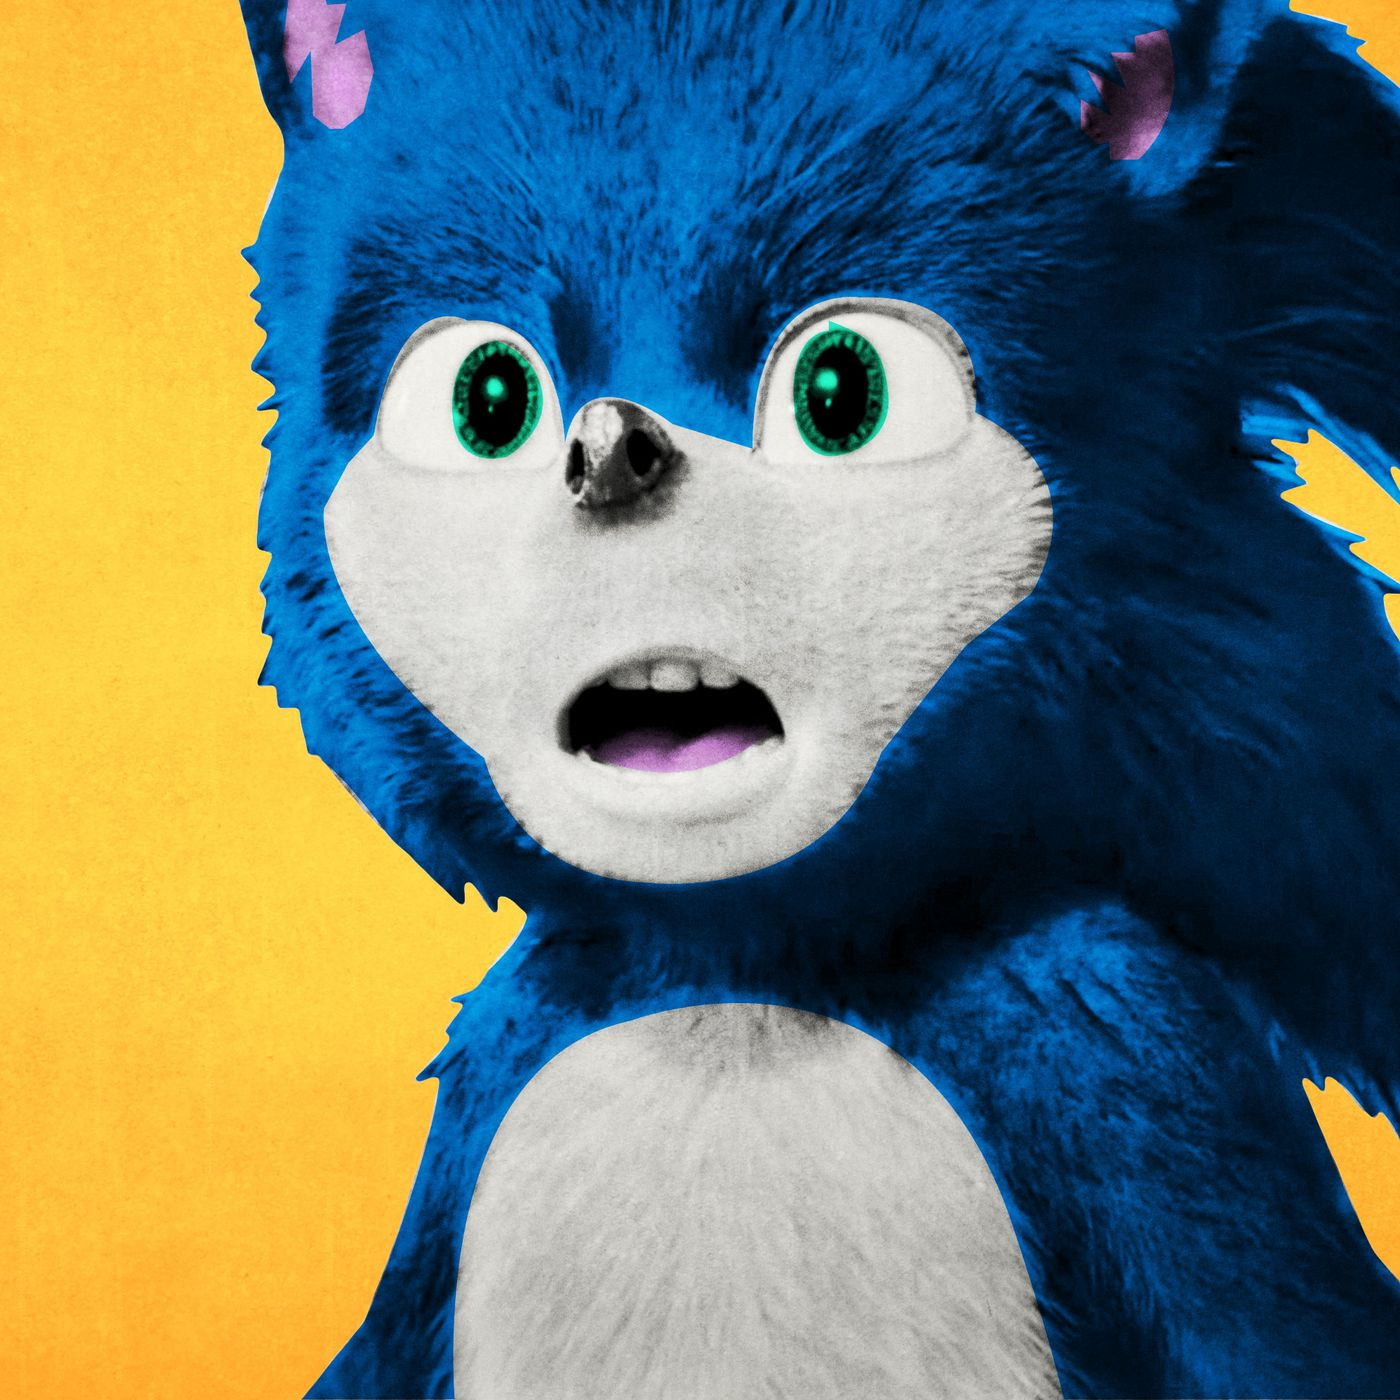 Five Pressing Questions About The Sonic The Hedgehog Trailer The Ringer